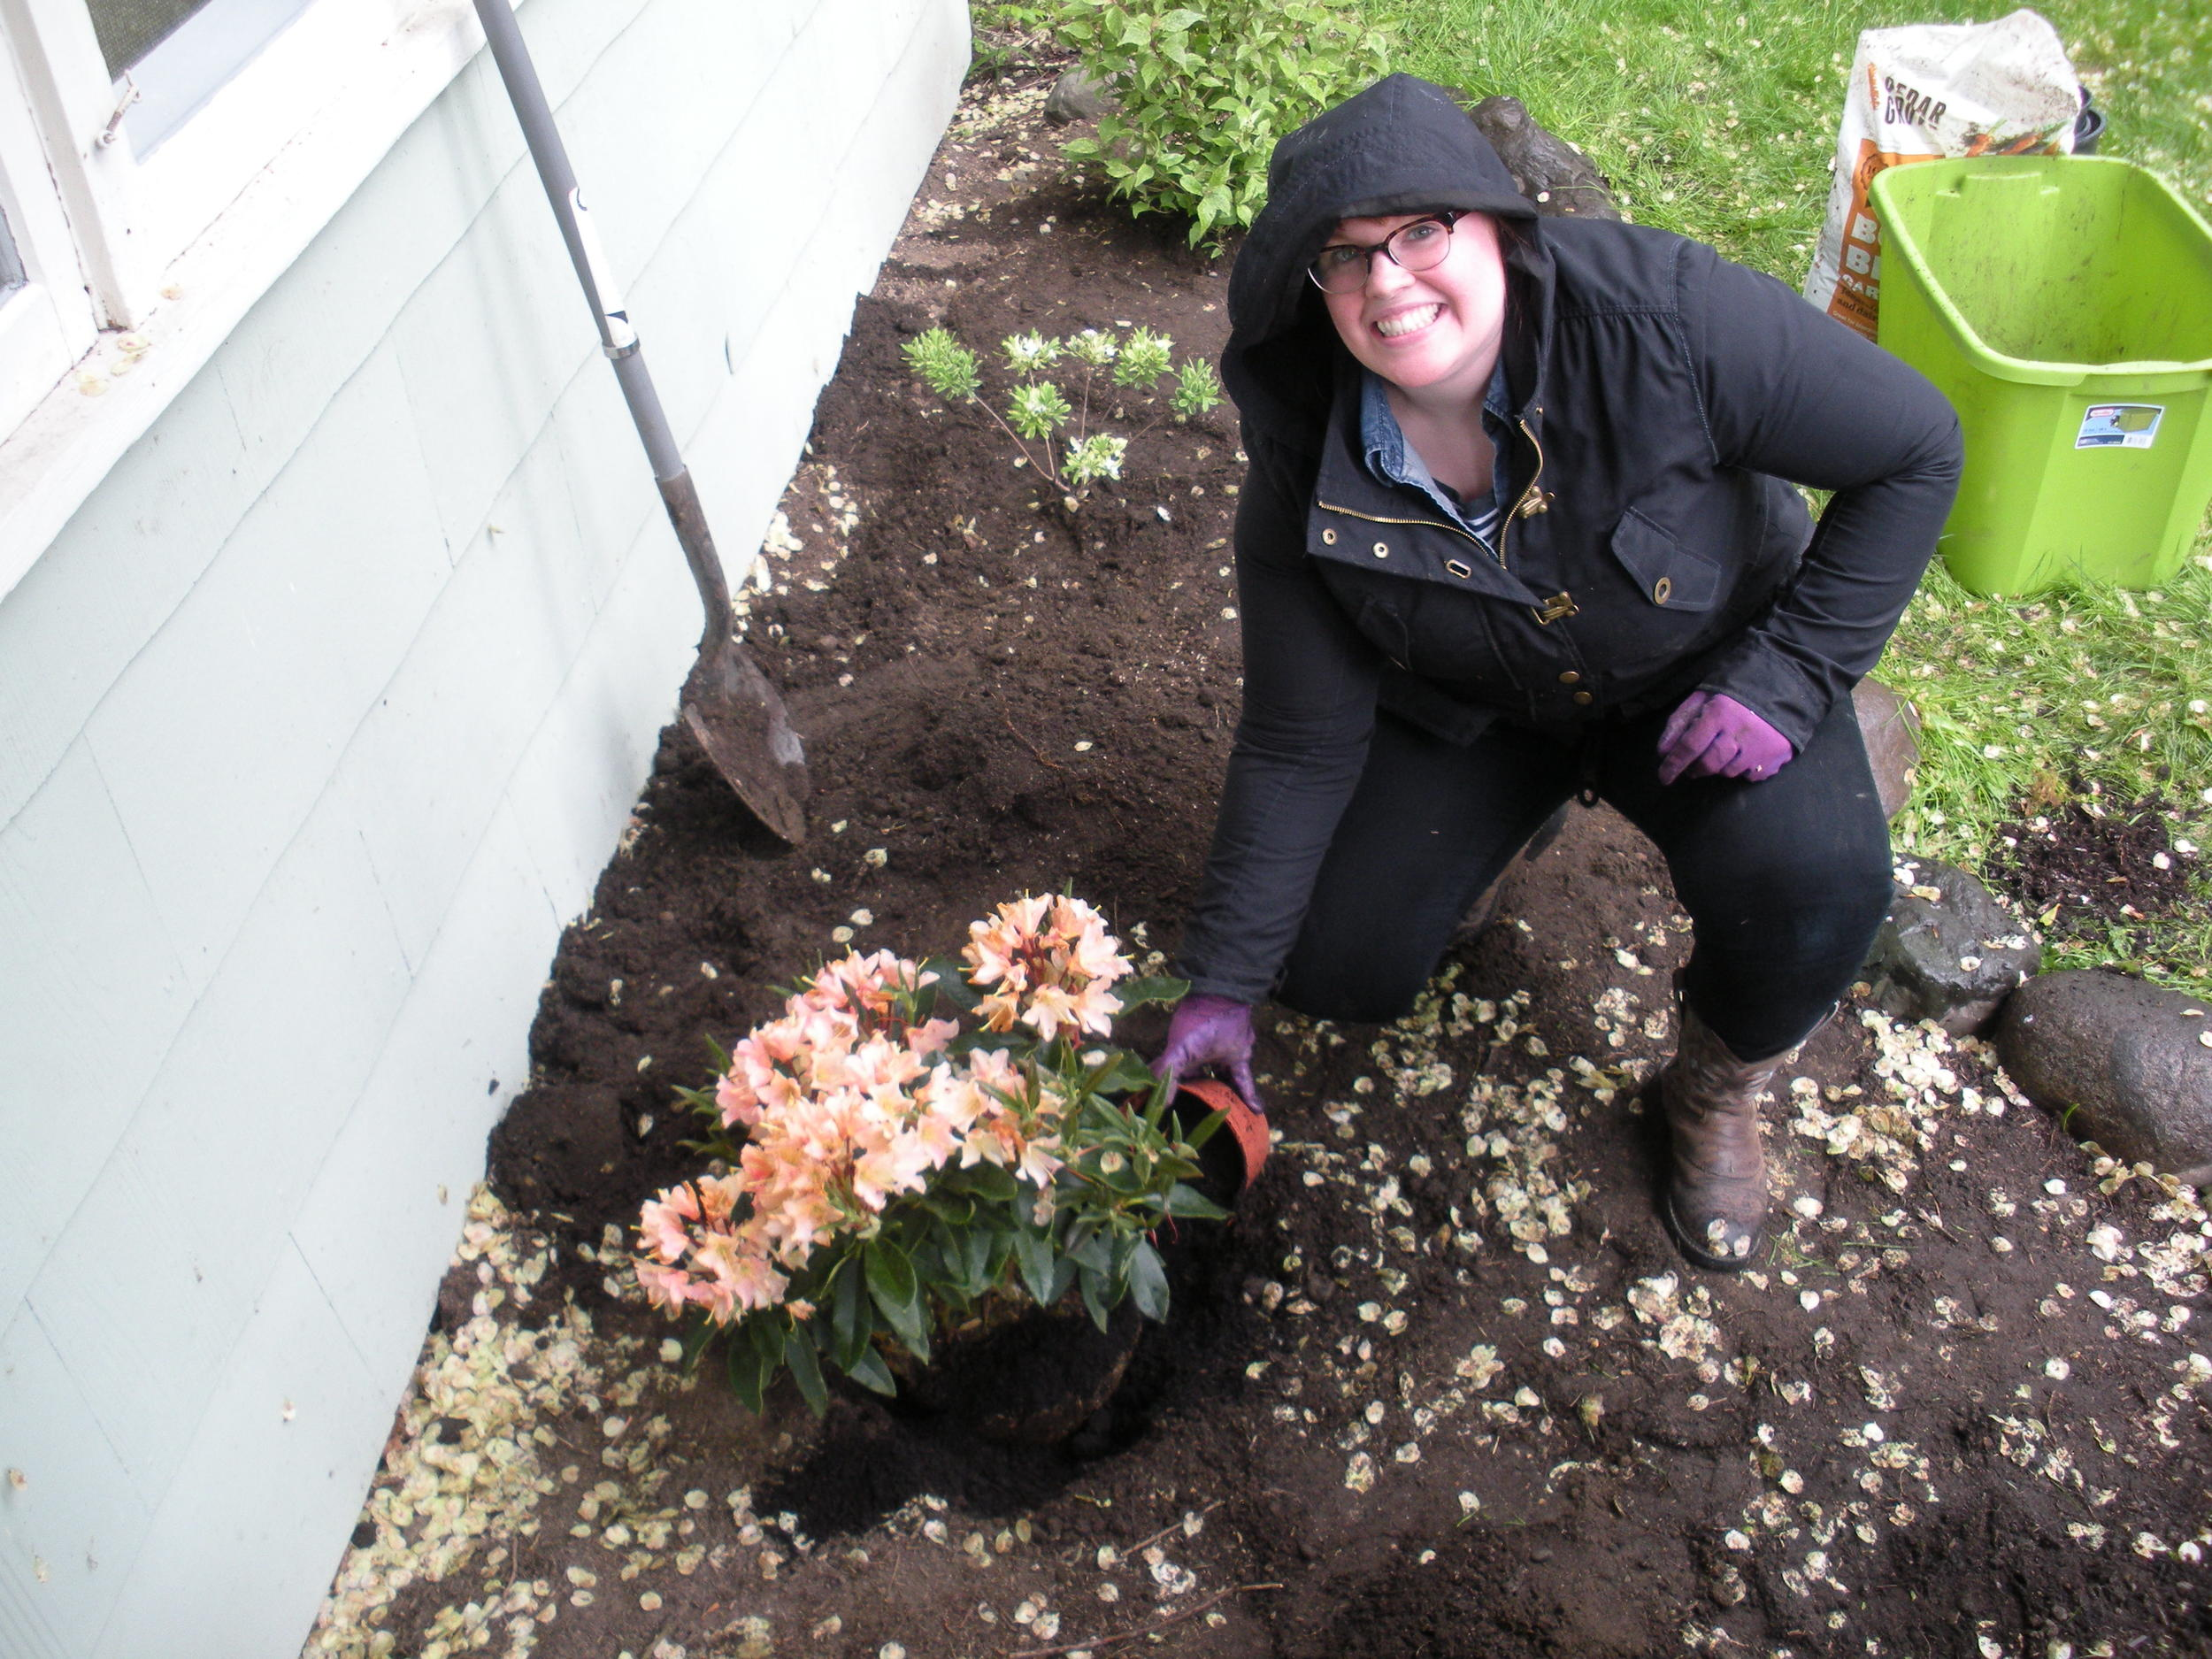 We planted in the rain like good Pacific Northwesterners!